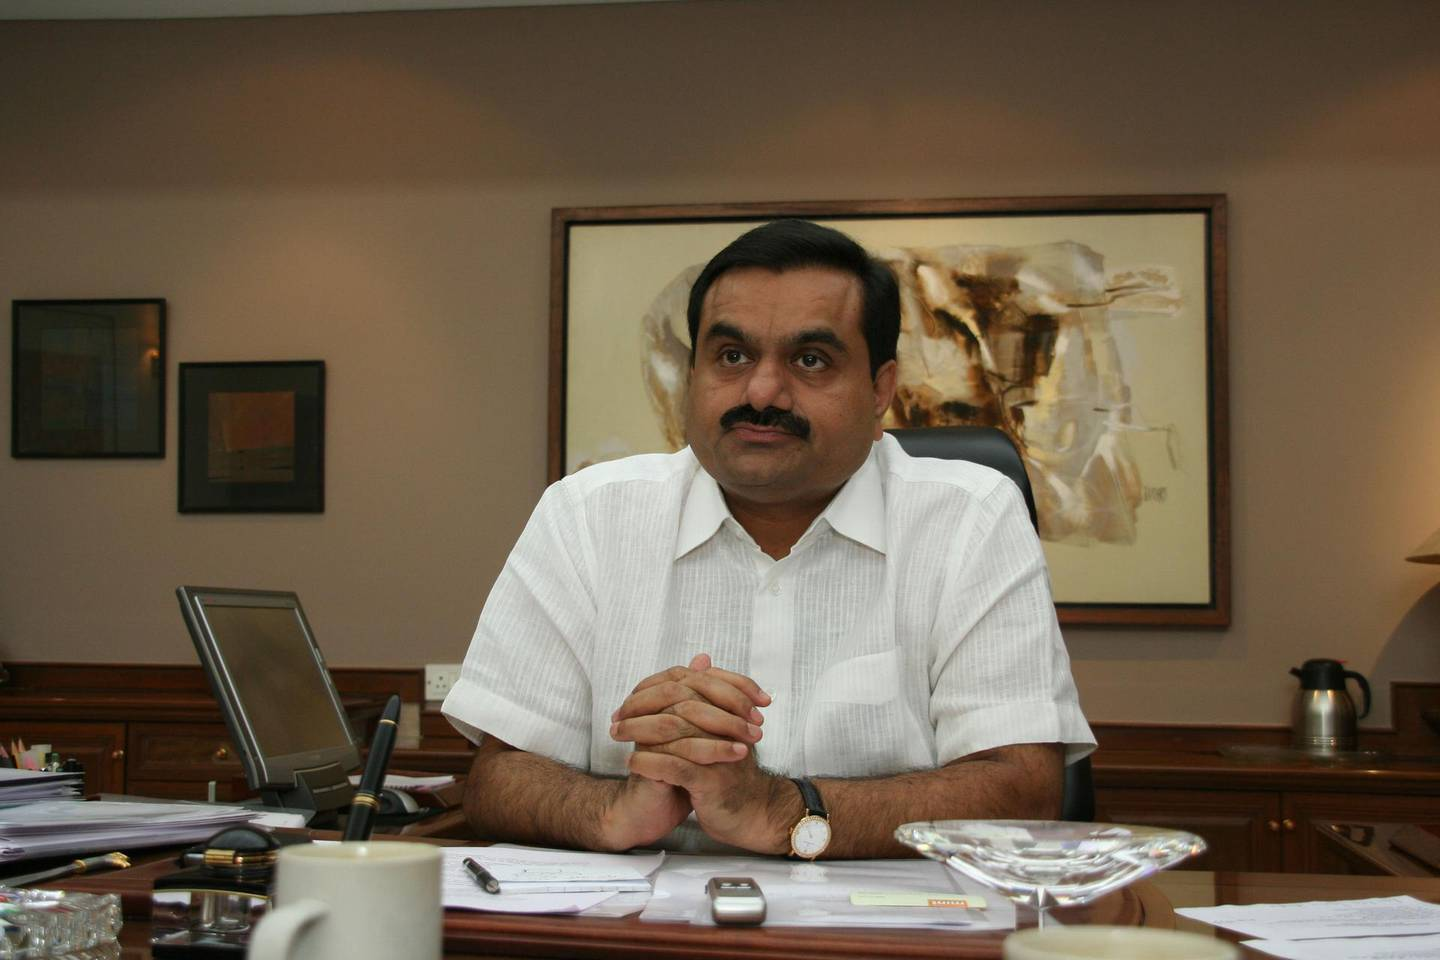 AHMEDABAD, INDIA - JULY 19: Chairman Of Adani Group Gautam Adani poses for a profile shoot during an interview on Jlu on July 19, 2010 in Ahmedabad, India. (Photo by Ramesh Dave/Mint via Getty Images) *** Local Caption ***  bz29jl-gautam-adani.jpg